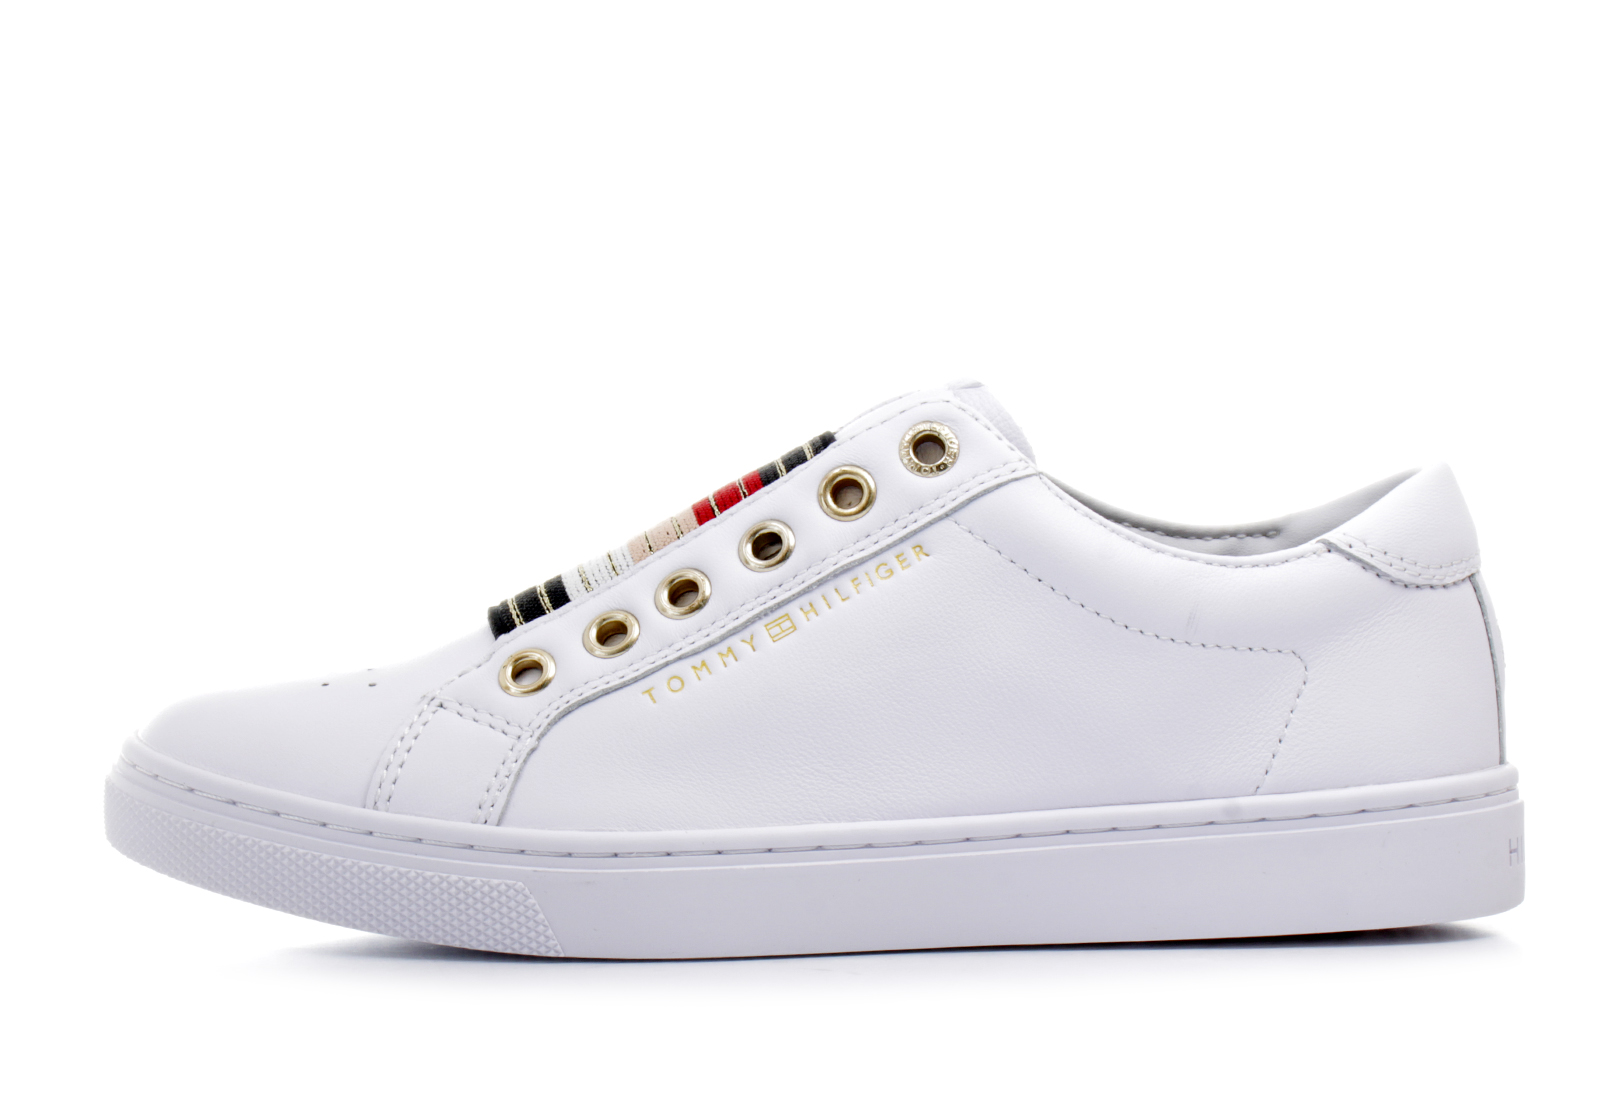 Tommy Hilfiger Shoes Venus 8a1 3